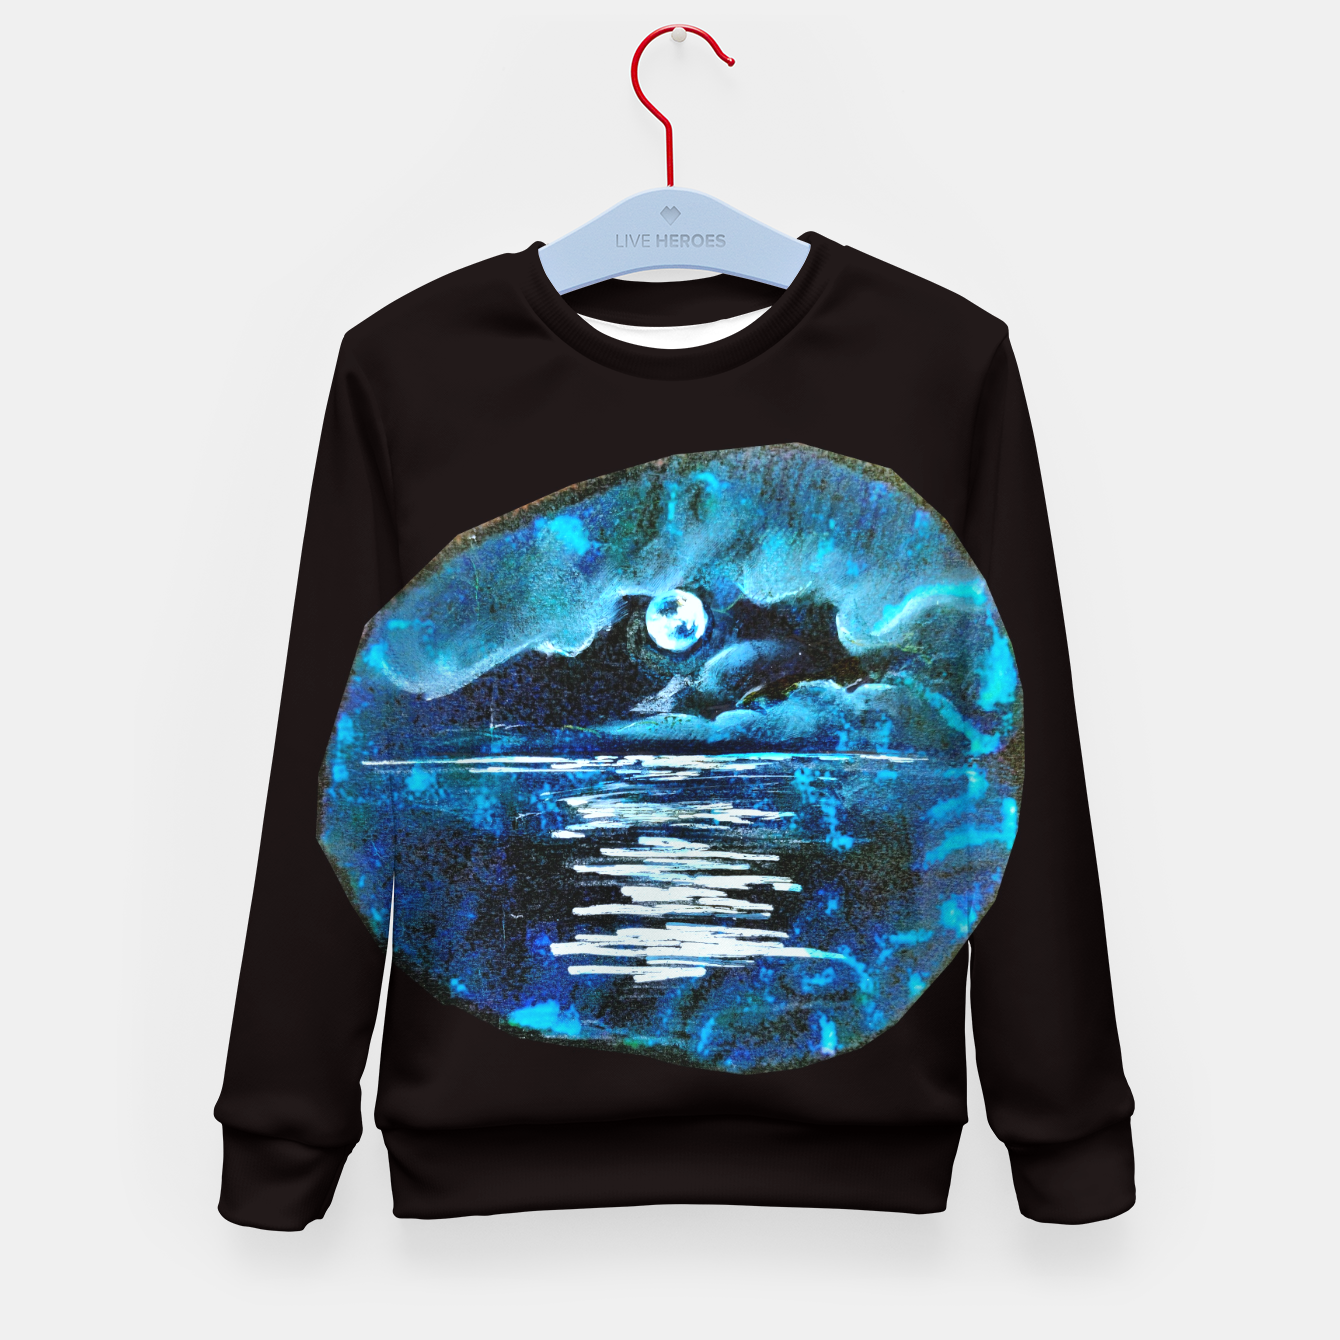 Image of Moon brain art for paratissima 19 Yulia A Korneva mri immage Kid's sweater - Live Heroes